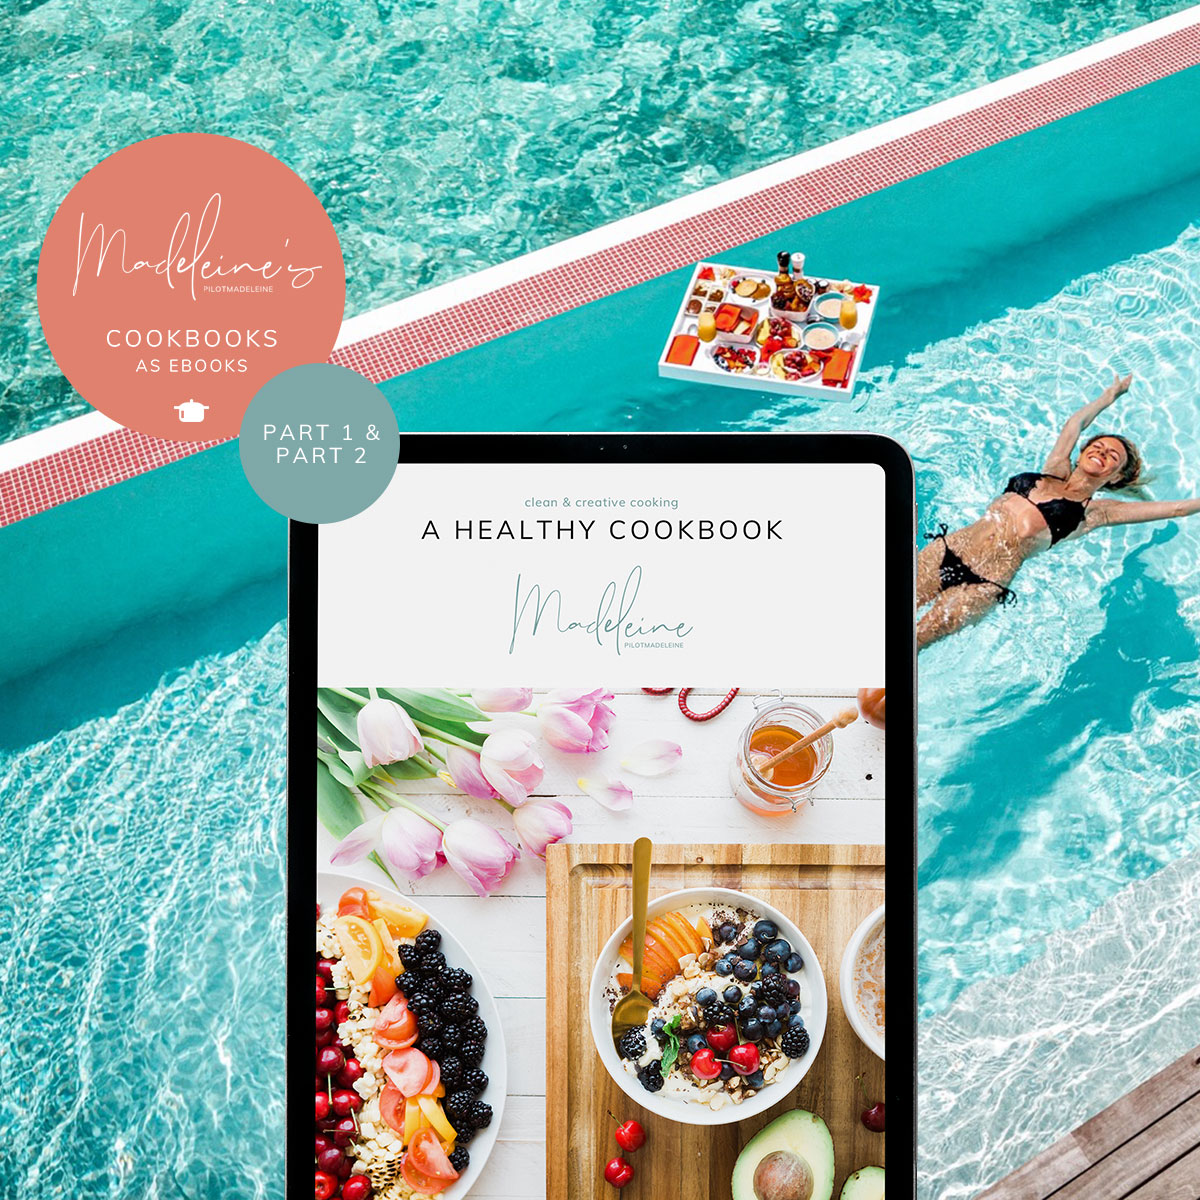 Cooking books by pilotmadeleine - buy now!